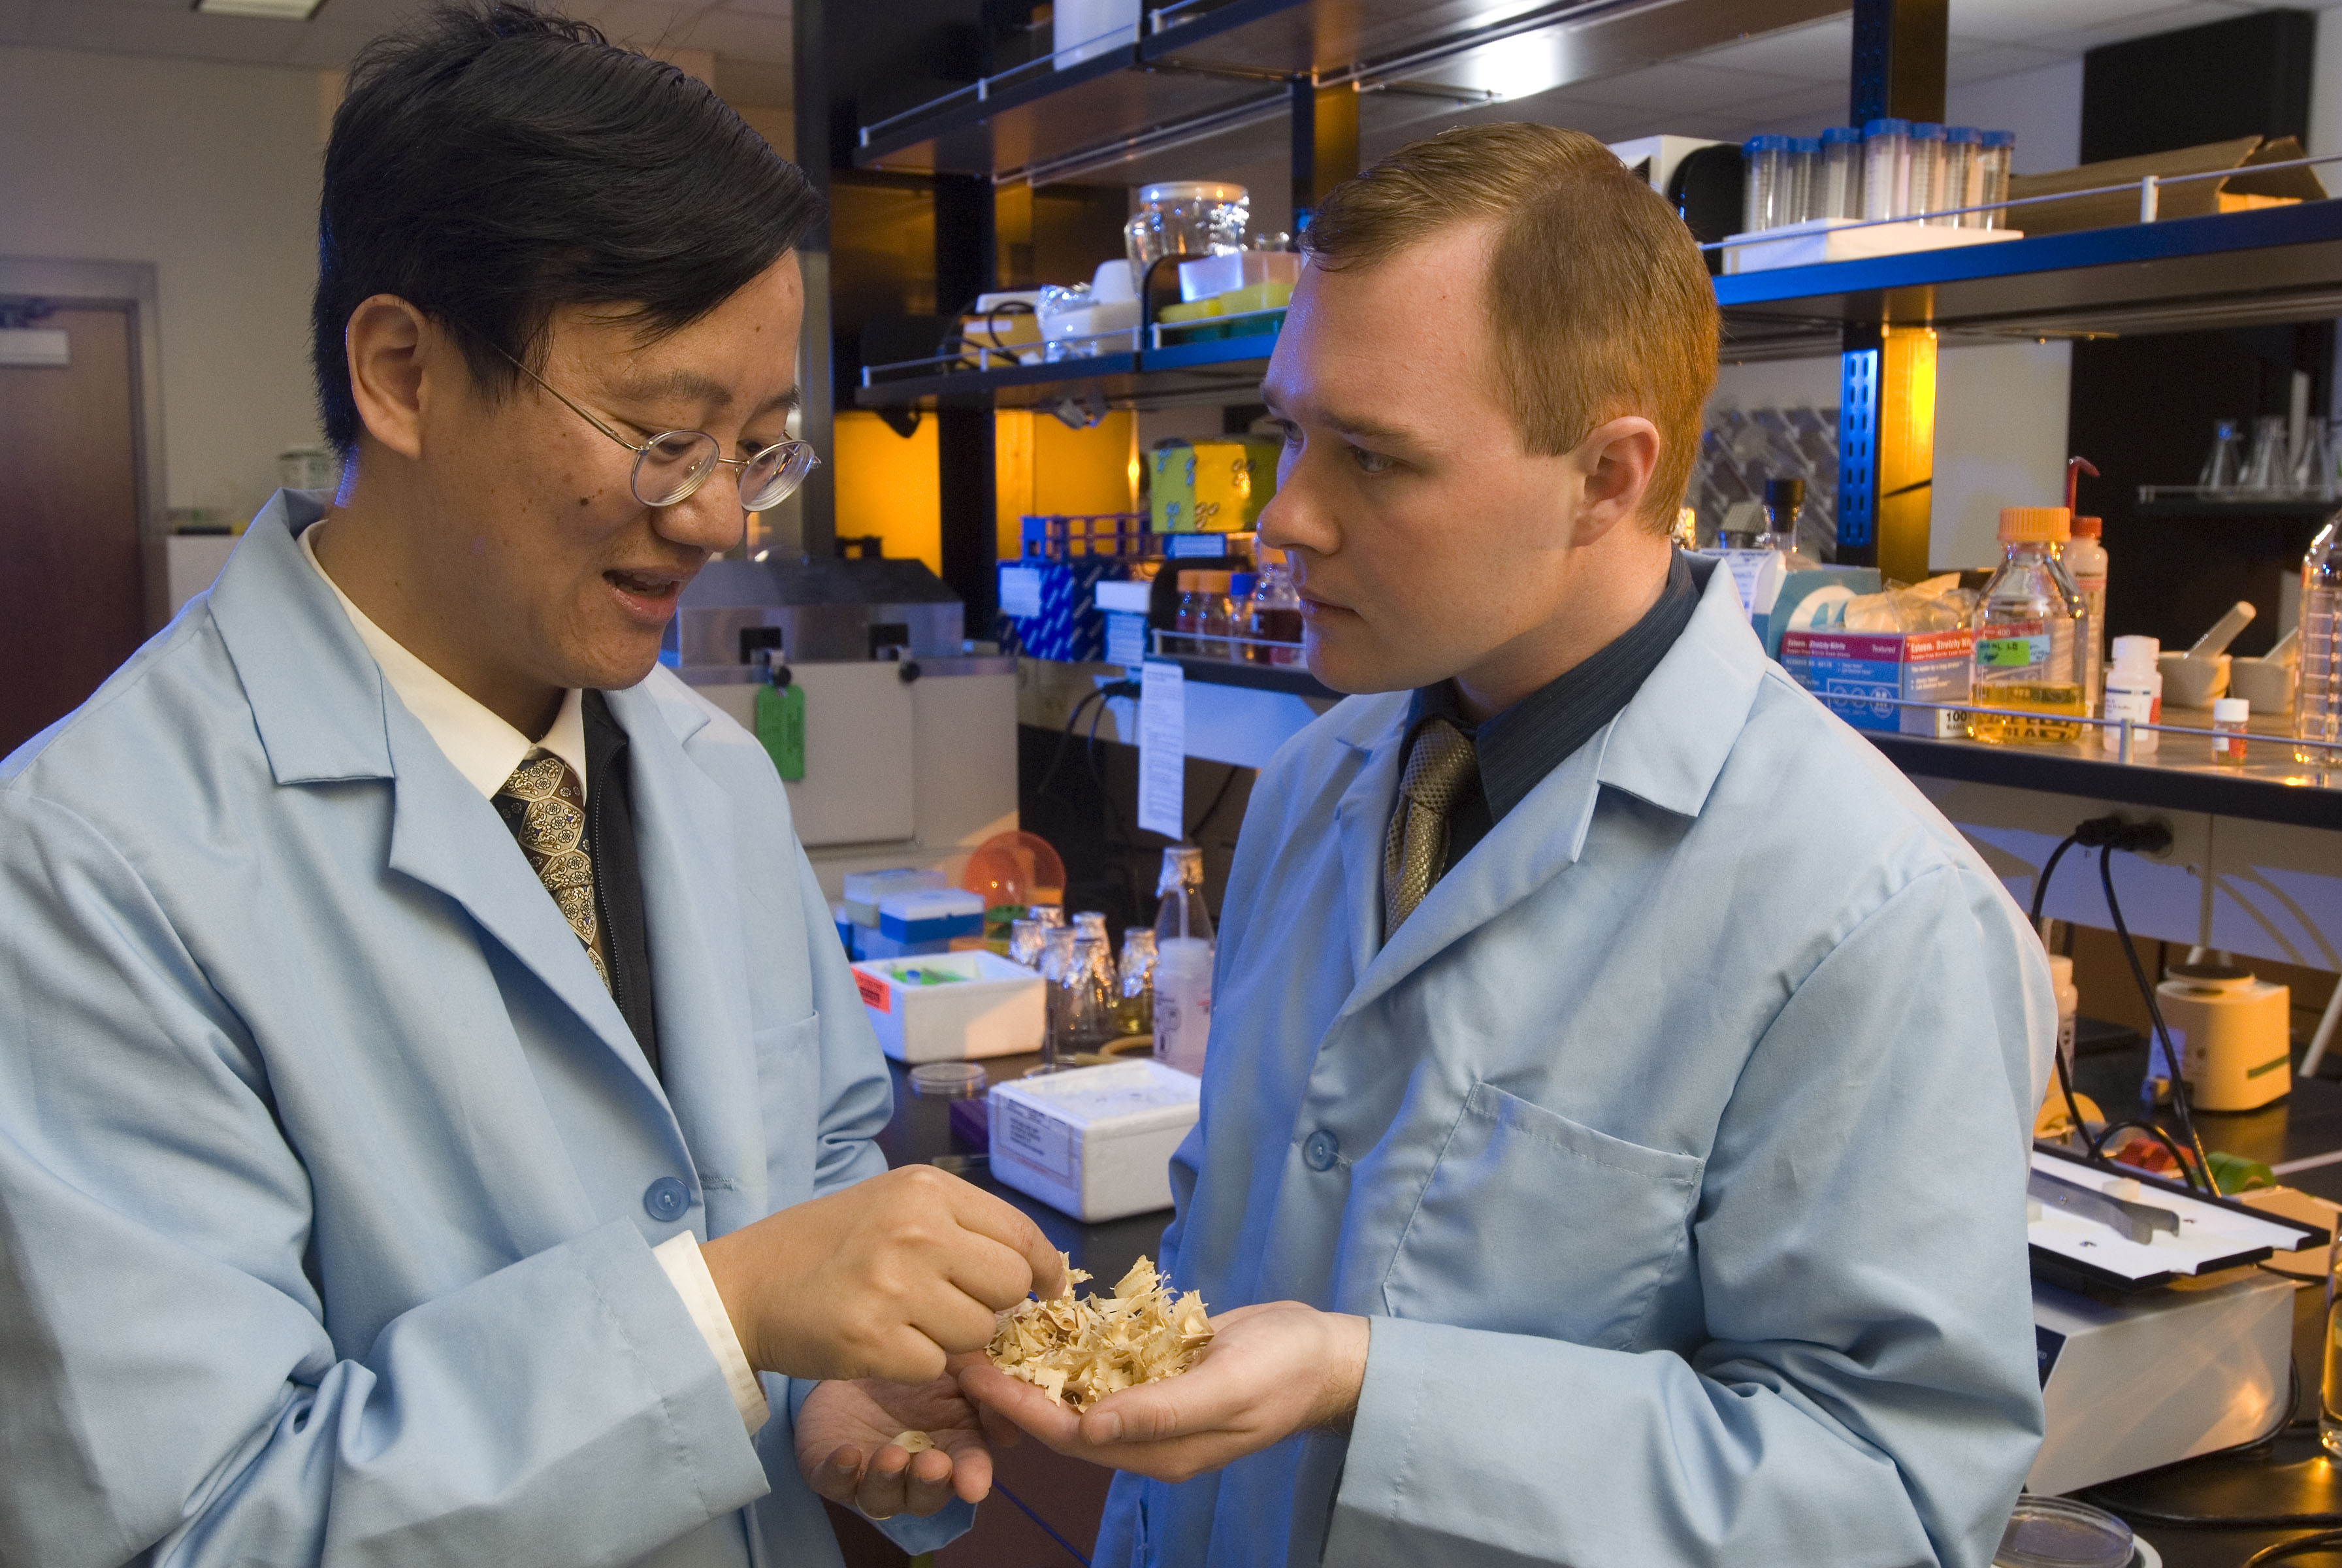 Percival Zhang (left) discusses conversion of biomass to energy with Geoff Moxley, who recently received his master of science degree in biological systems engineering from Virginia Tech.